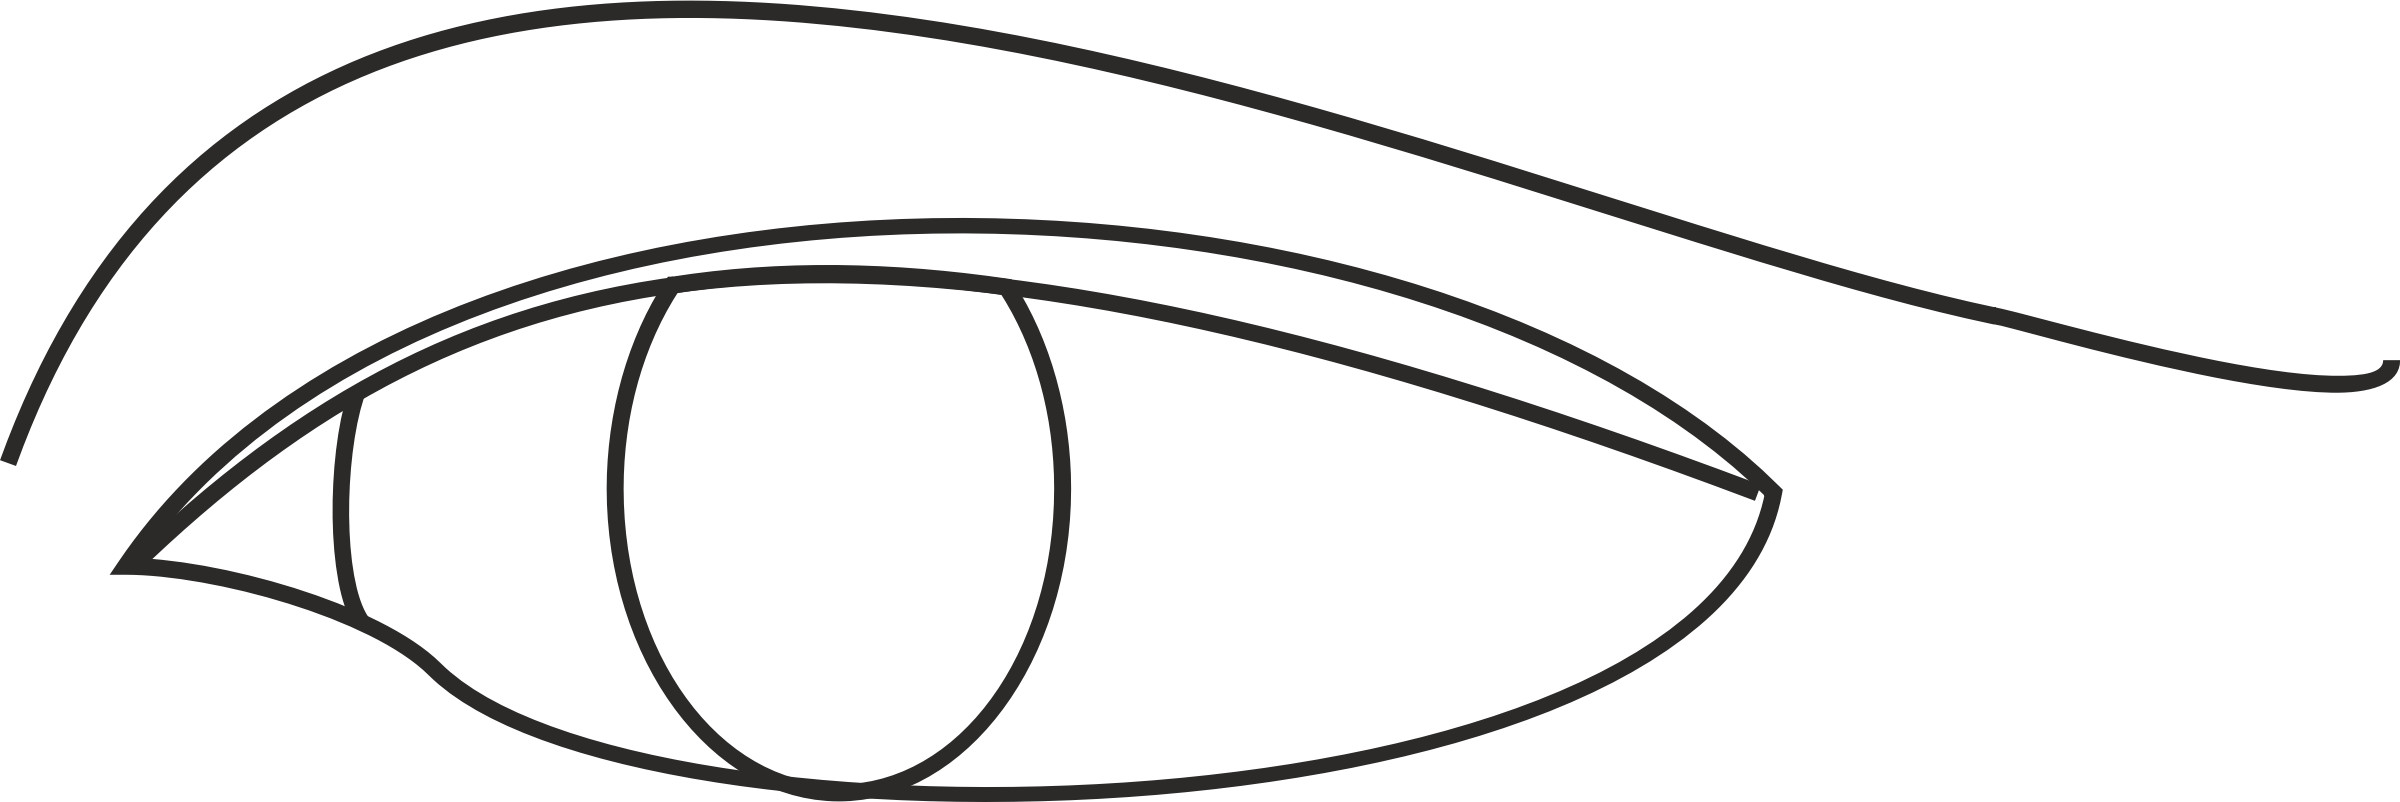 Drawing oval eye. Clipart line